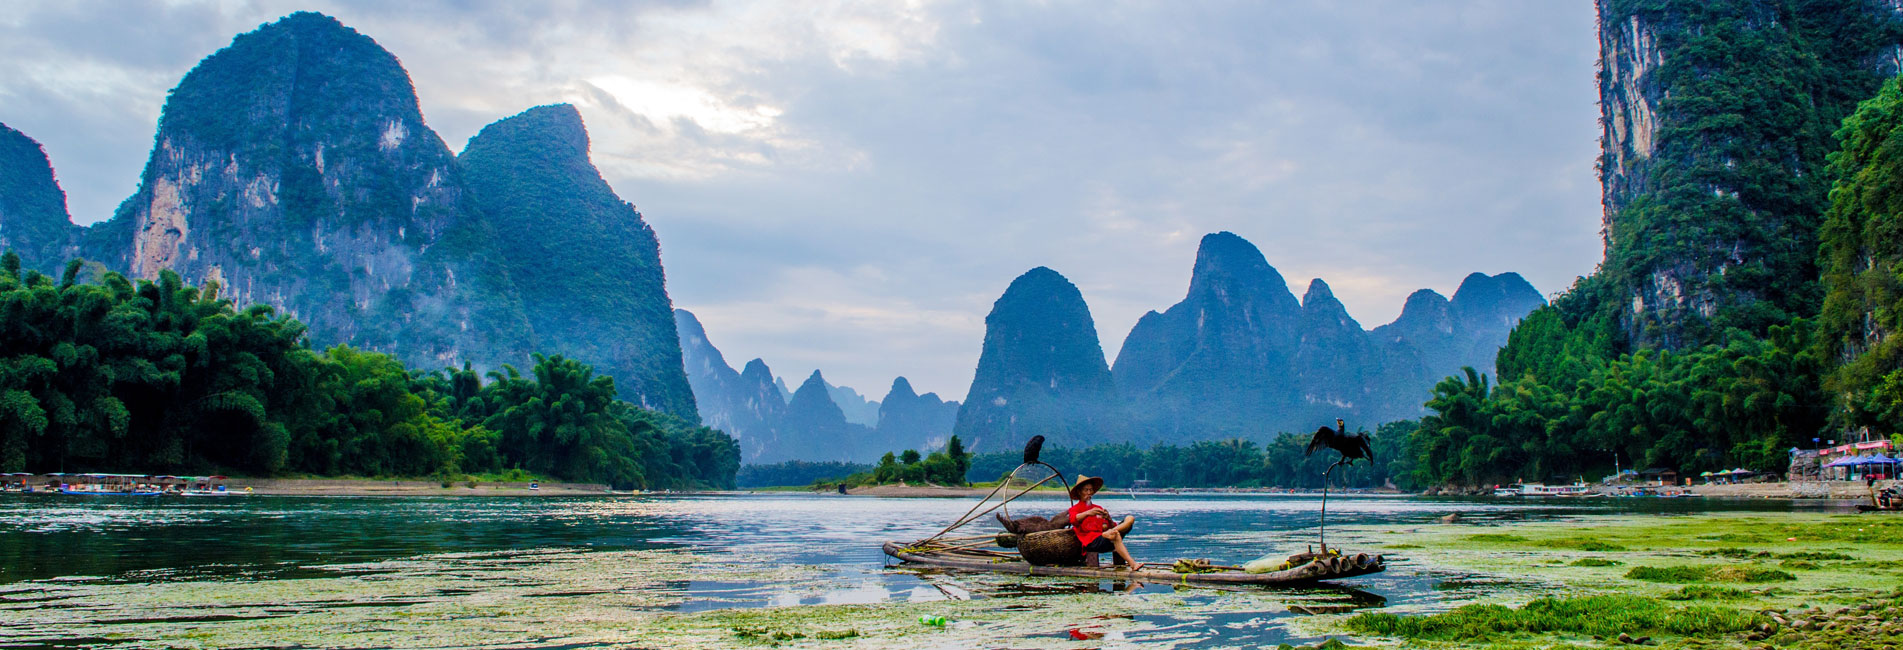 Countryside view in Guilin